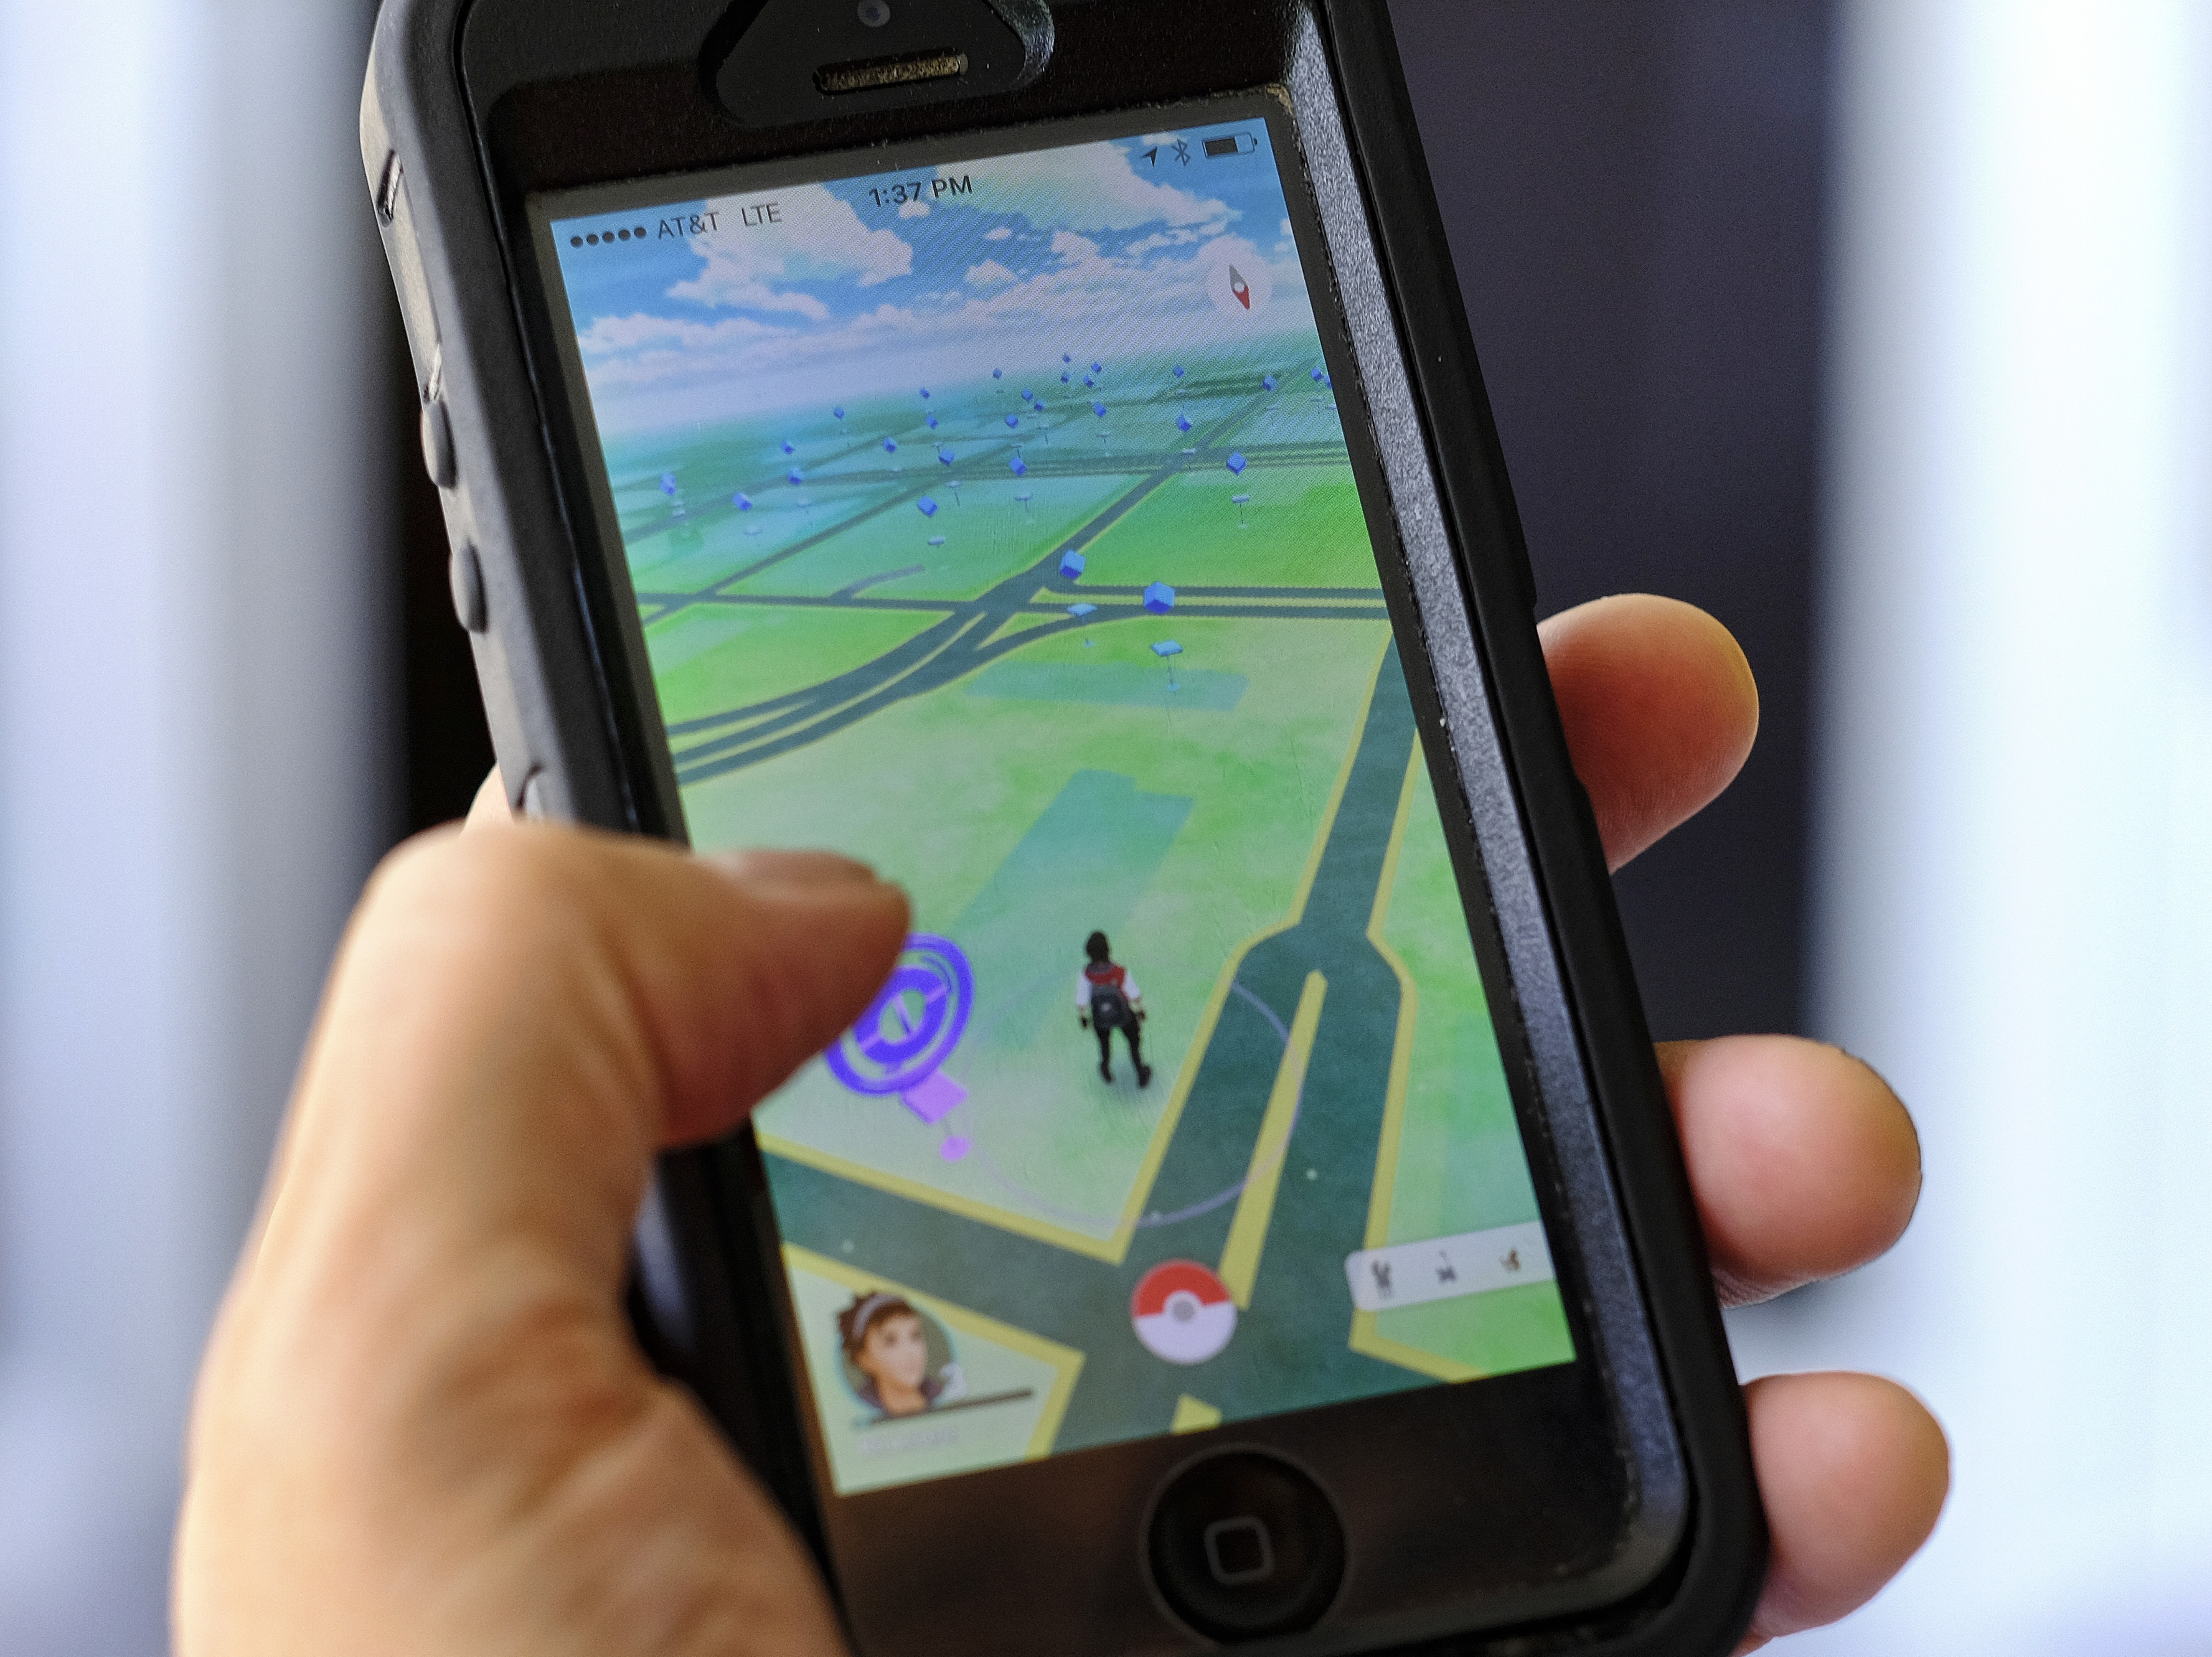 The Pokémon Go mobile game is the top-grossing app for Android and iPhone. Today, the U.S. Holocaust Museum and Arlington National Cemetery asked people to refrain from using the game while visiting the somber sites. (Photo by Richard Vogel/AP)